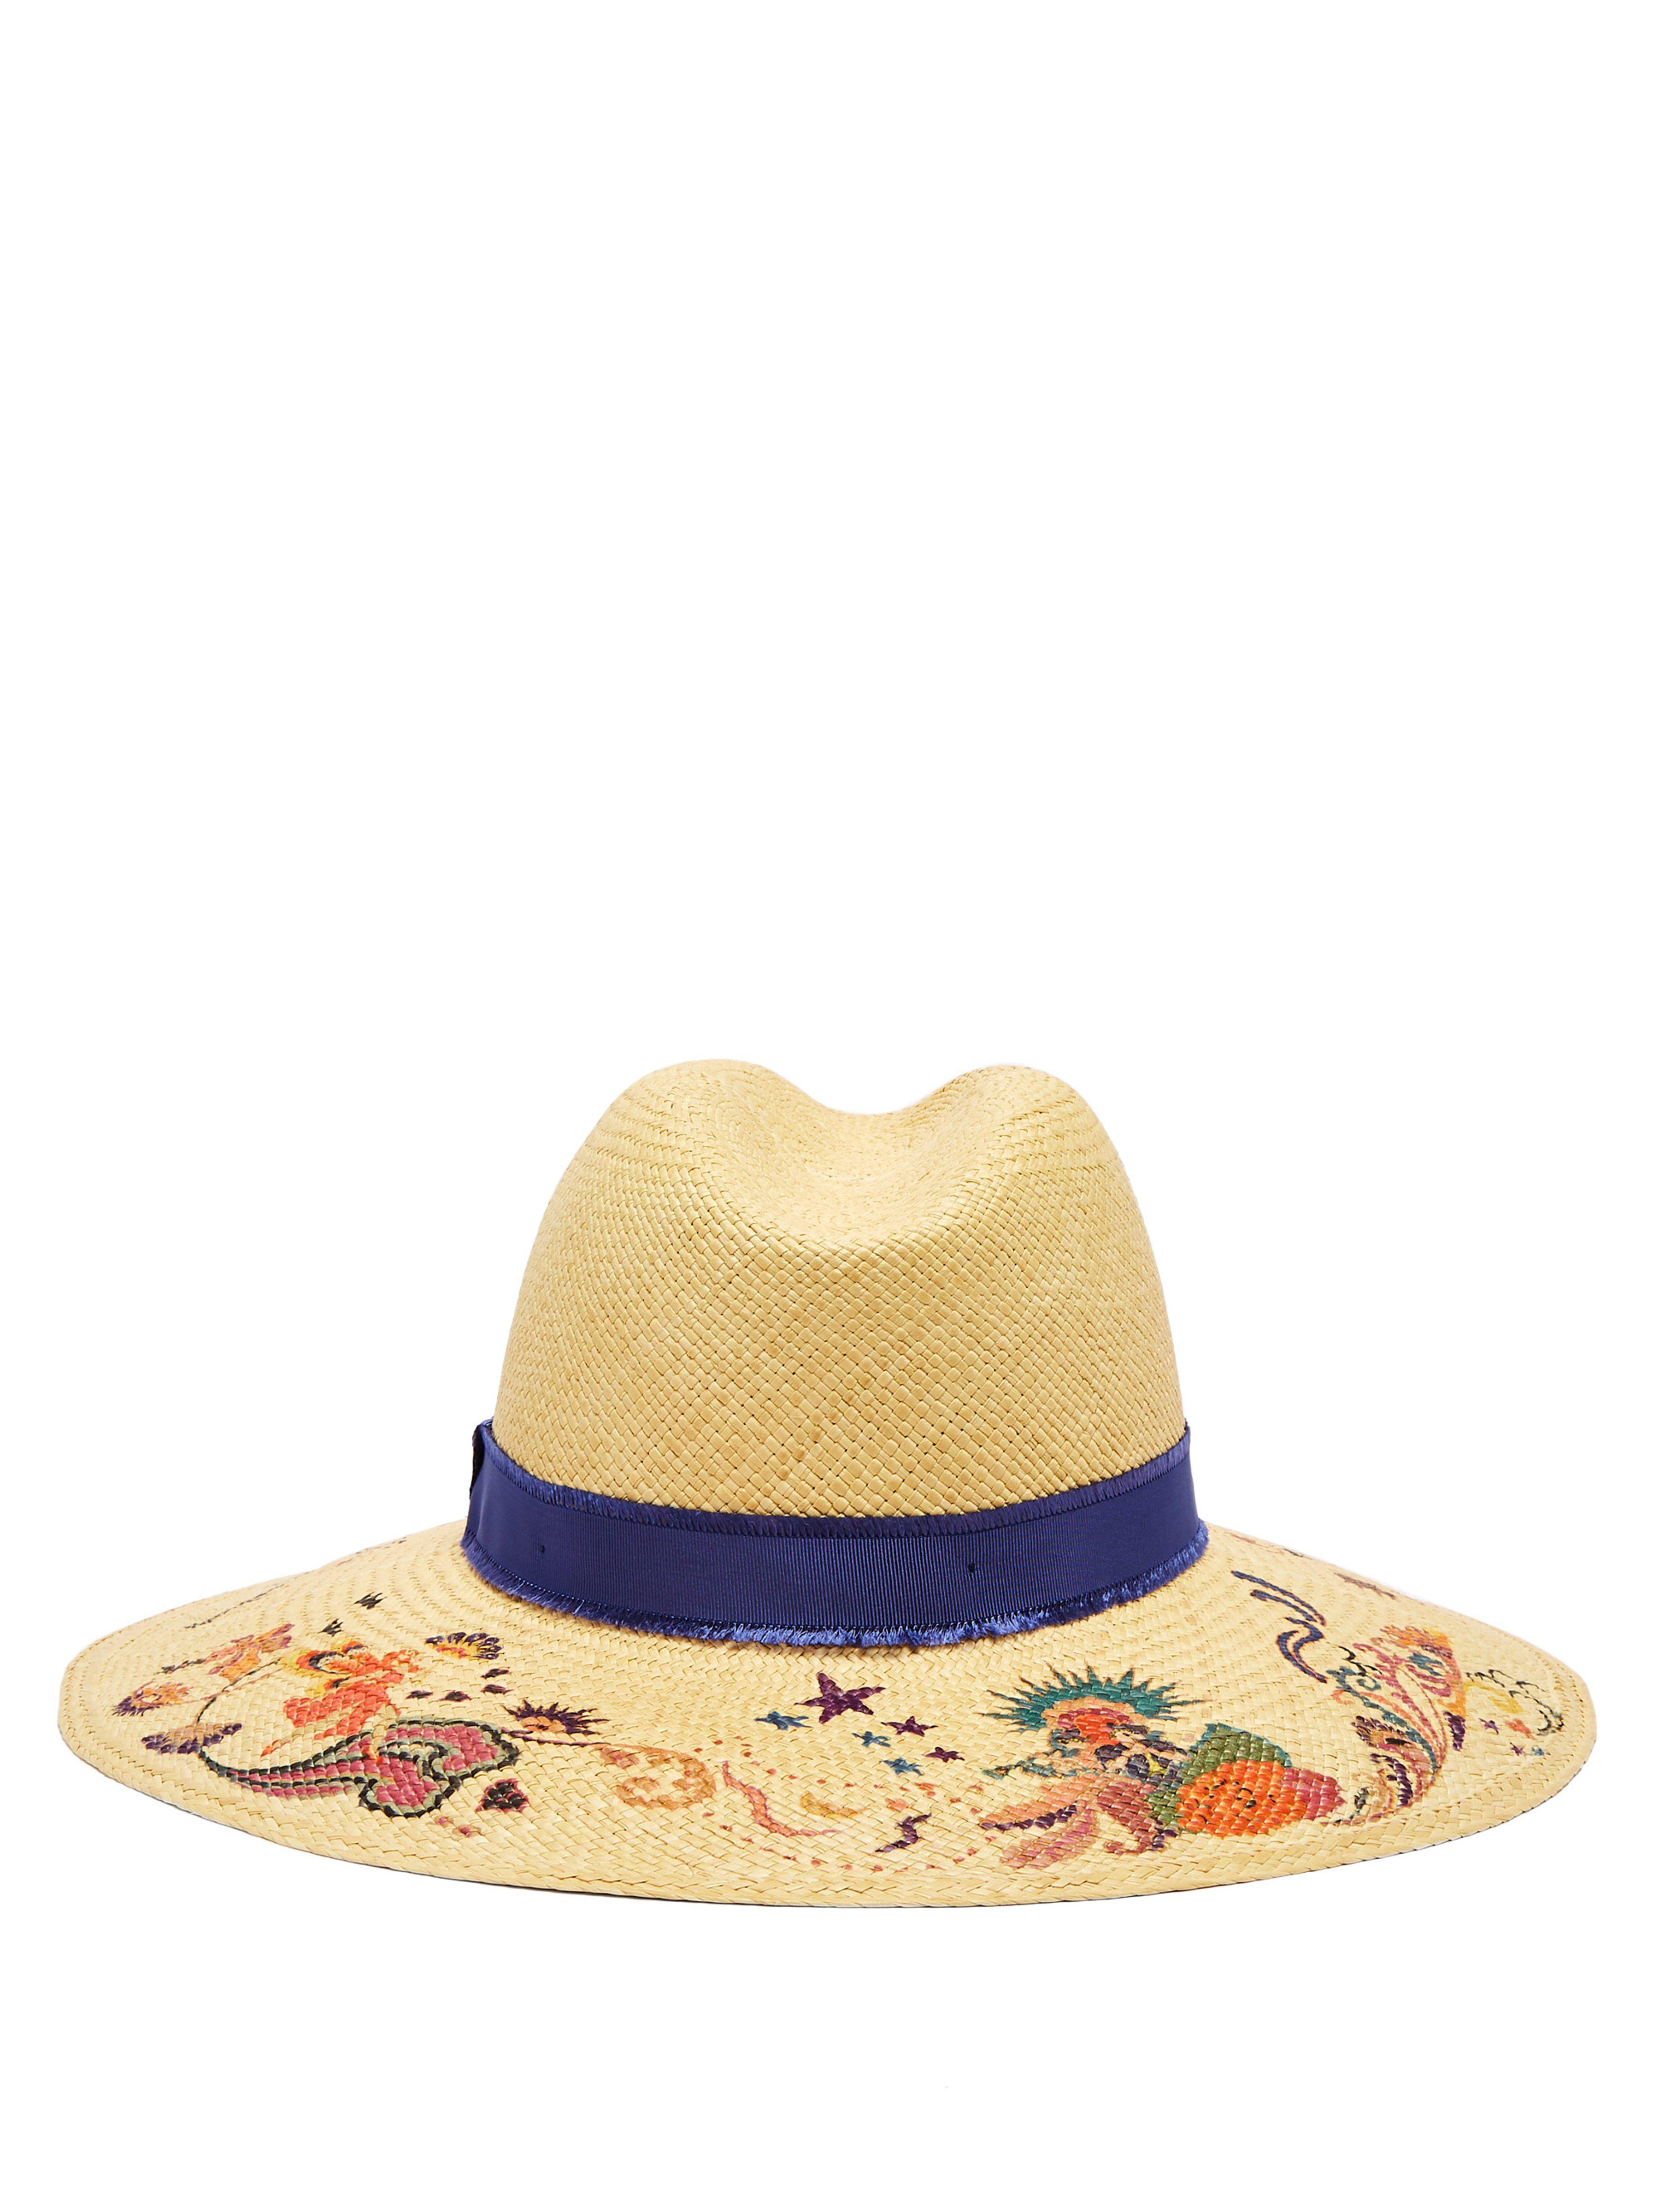 77d0960f Etro - Natural Grosgrain-trimmed Floral-print Straw Hat - Lyst. View  fullscreen